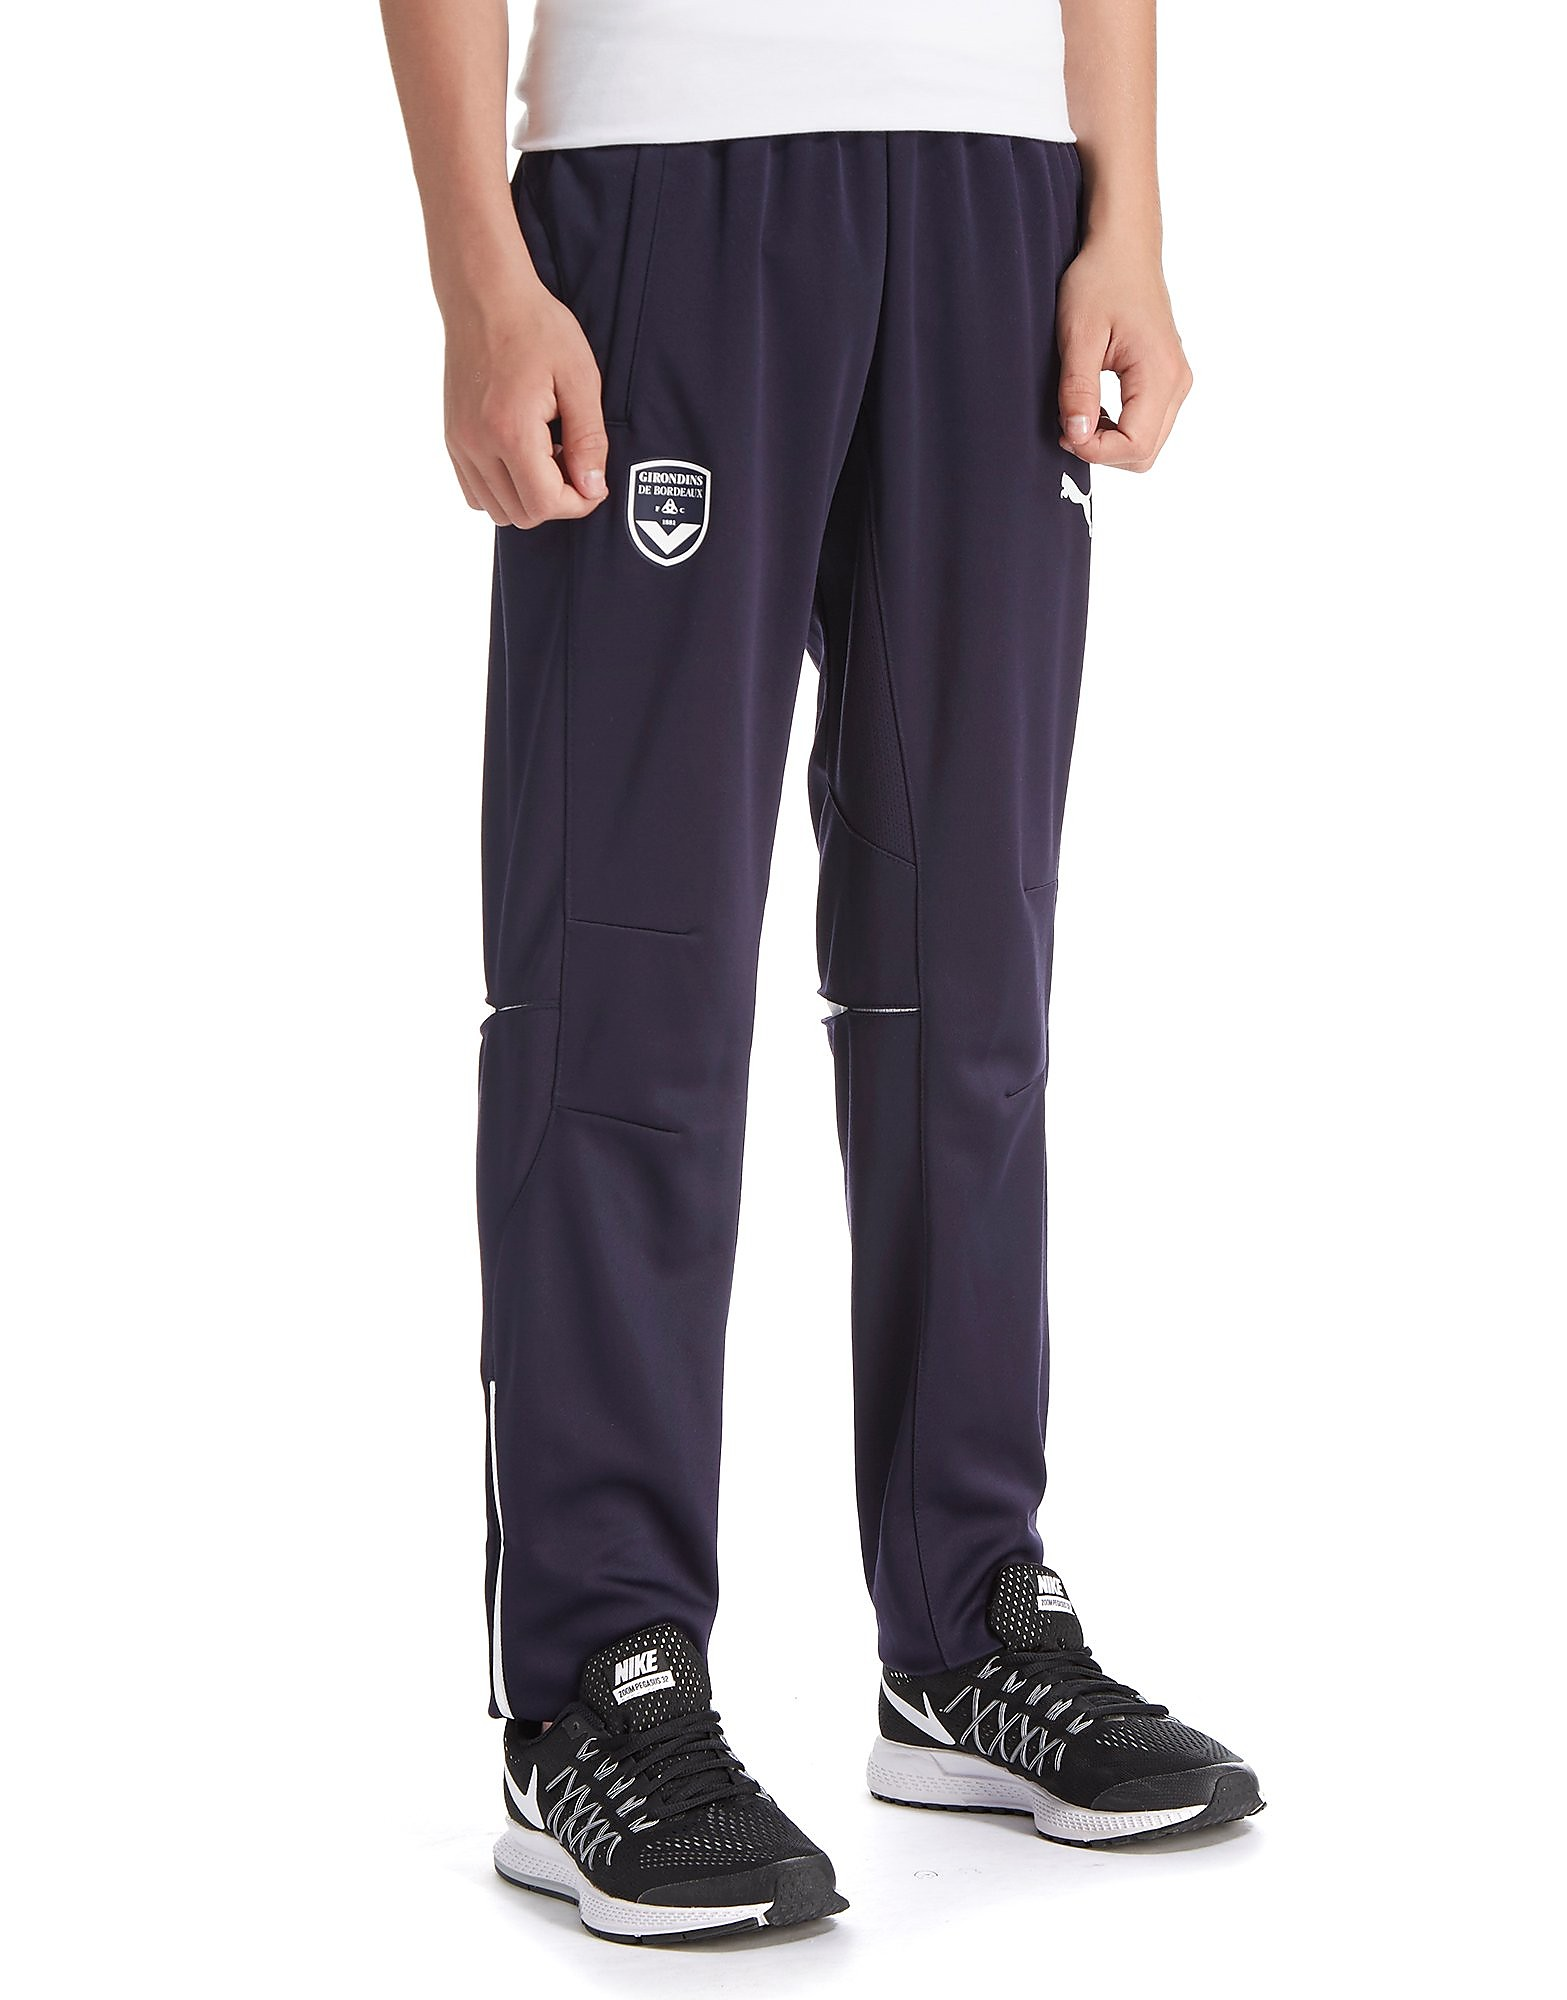 PUMA Pantalon de survêtement junior Bordeaux 2016/17